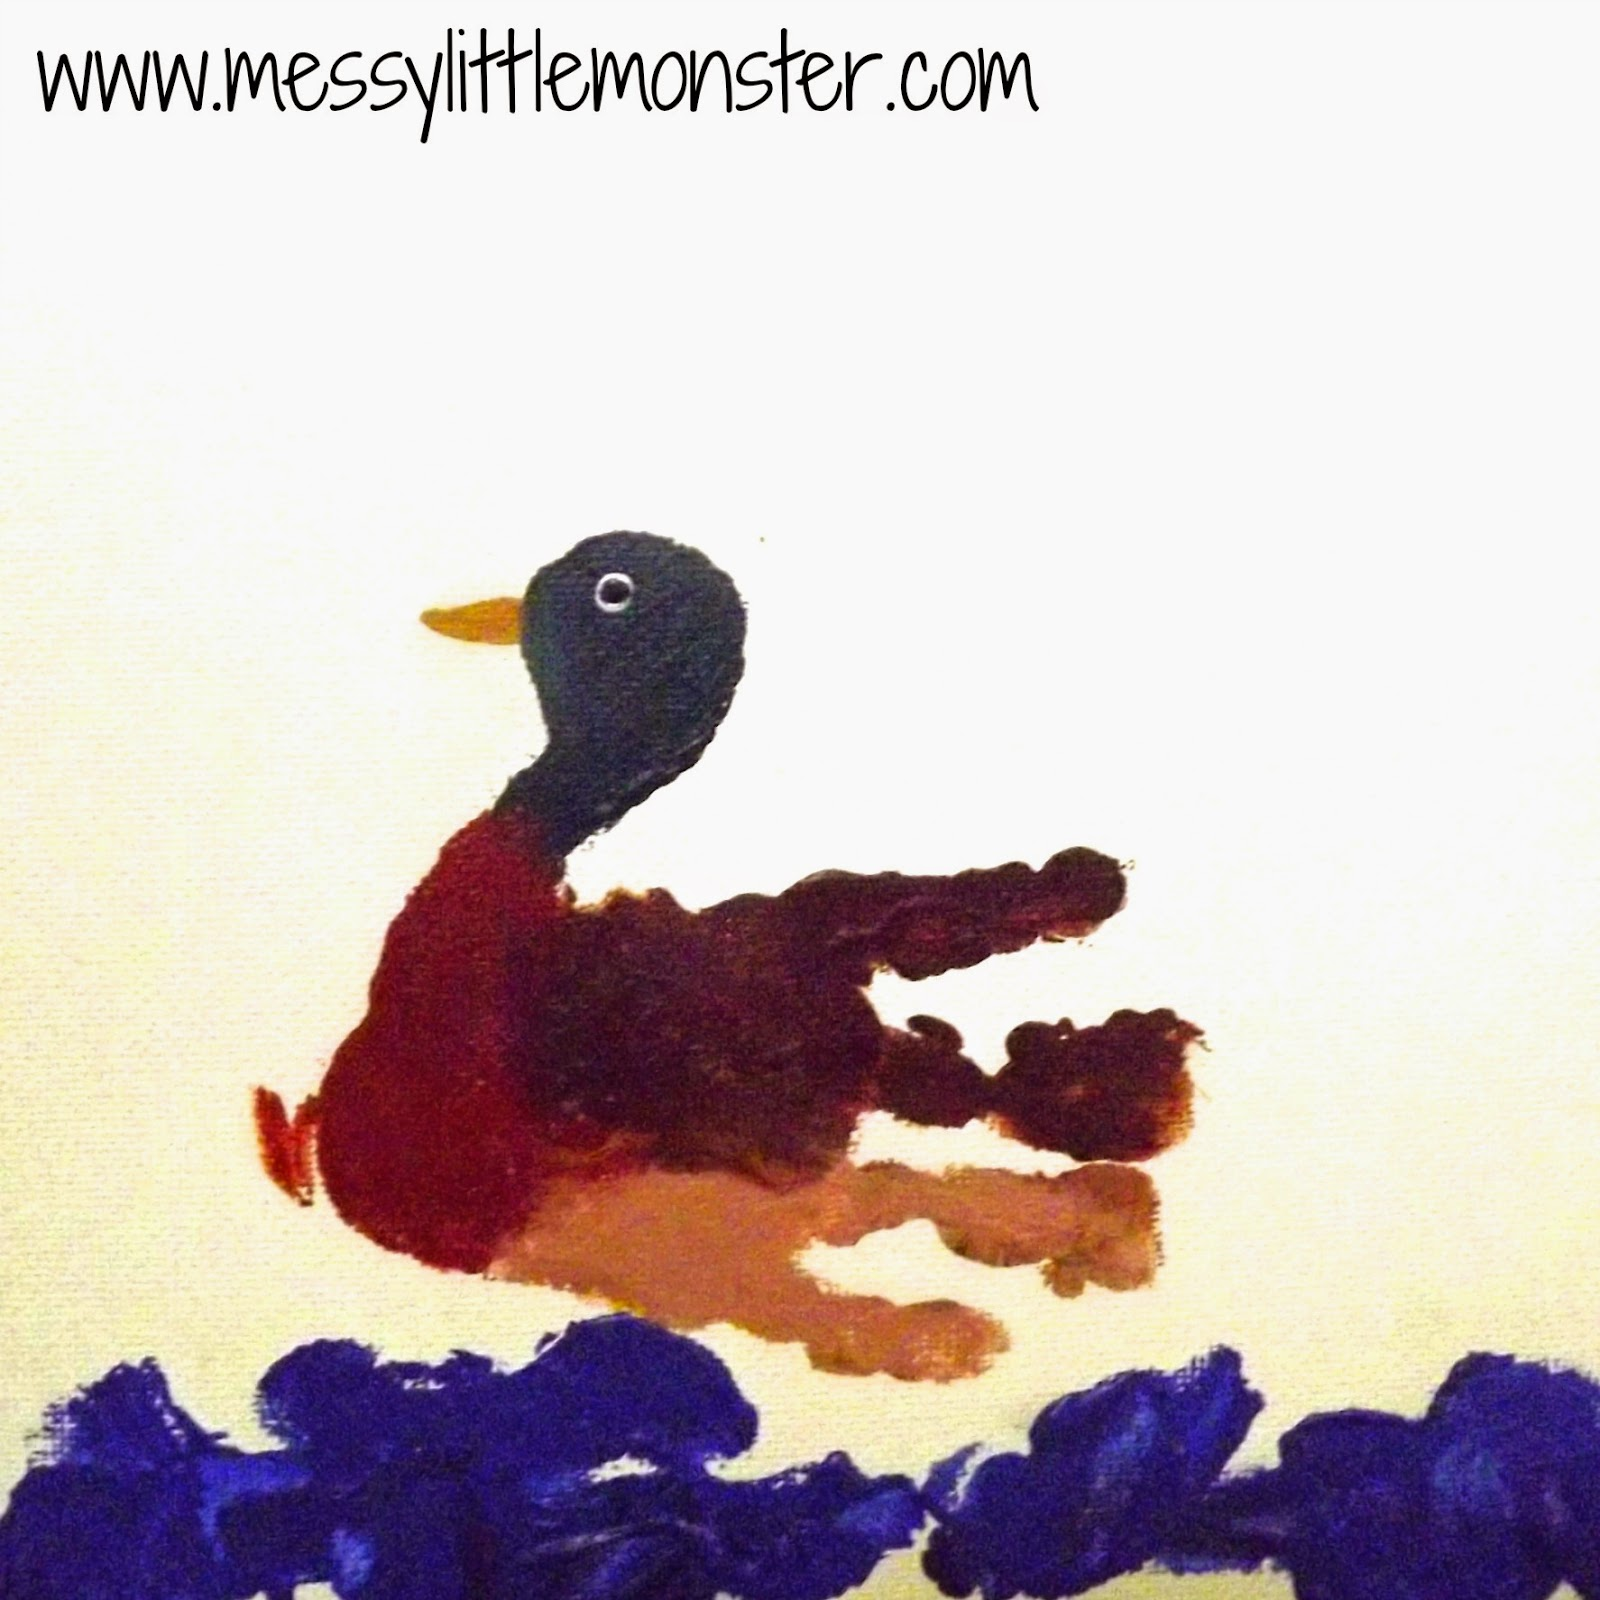 Duck craft - Animal handprints on canvas.  Simple gift ideas for toddlers and preschoolers to make.